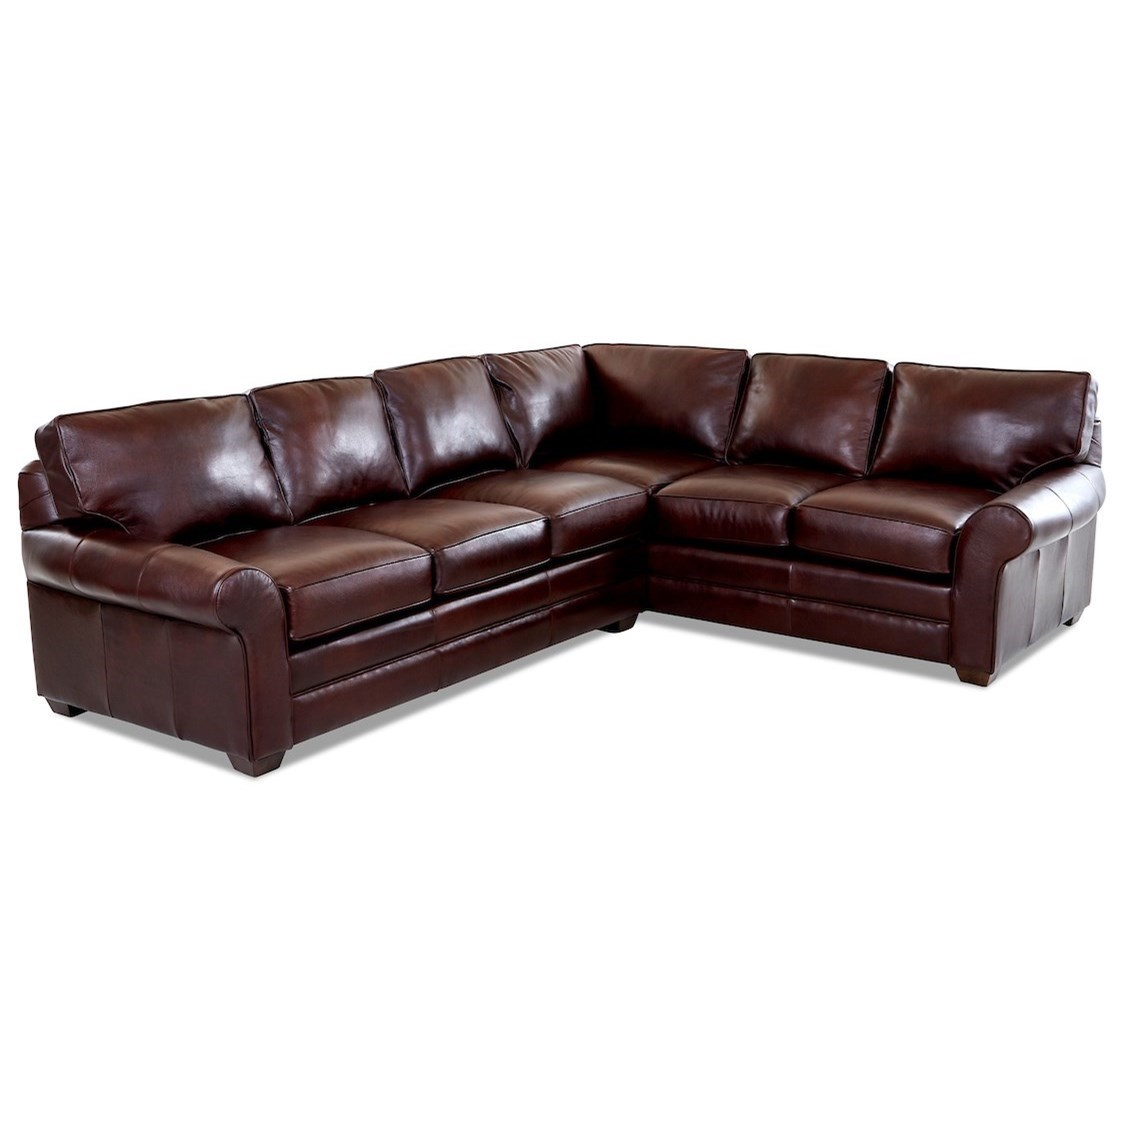 Troupe 2 Pc Sectional Sofa w/ LAF Sofa by Klaussner at Johnny Janosik